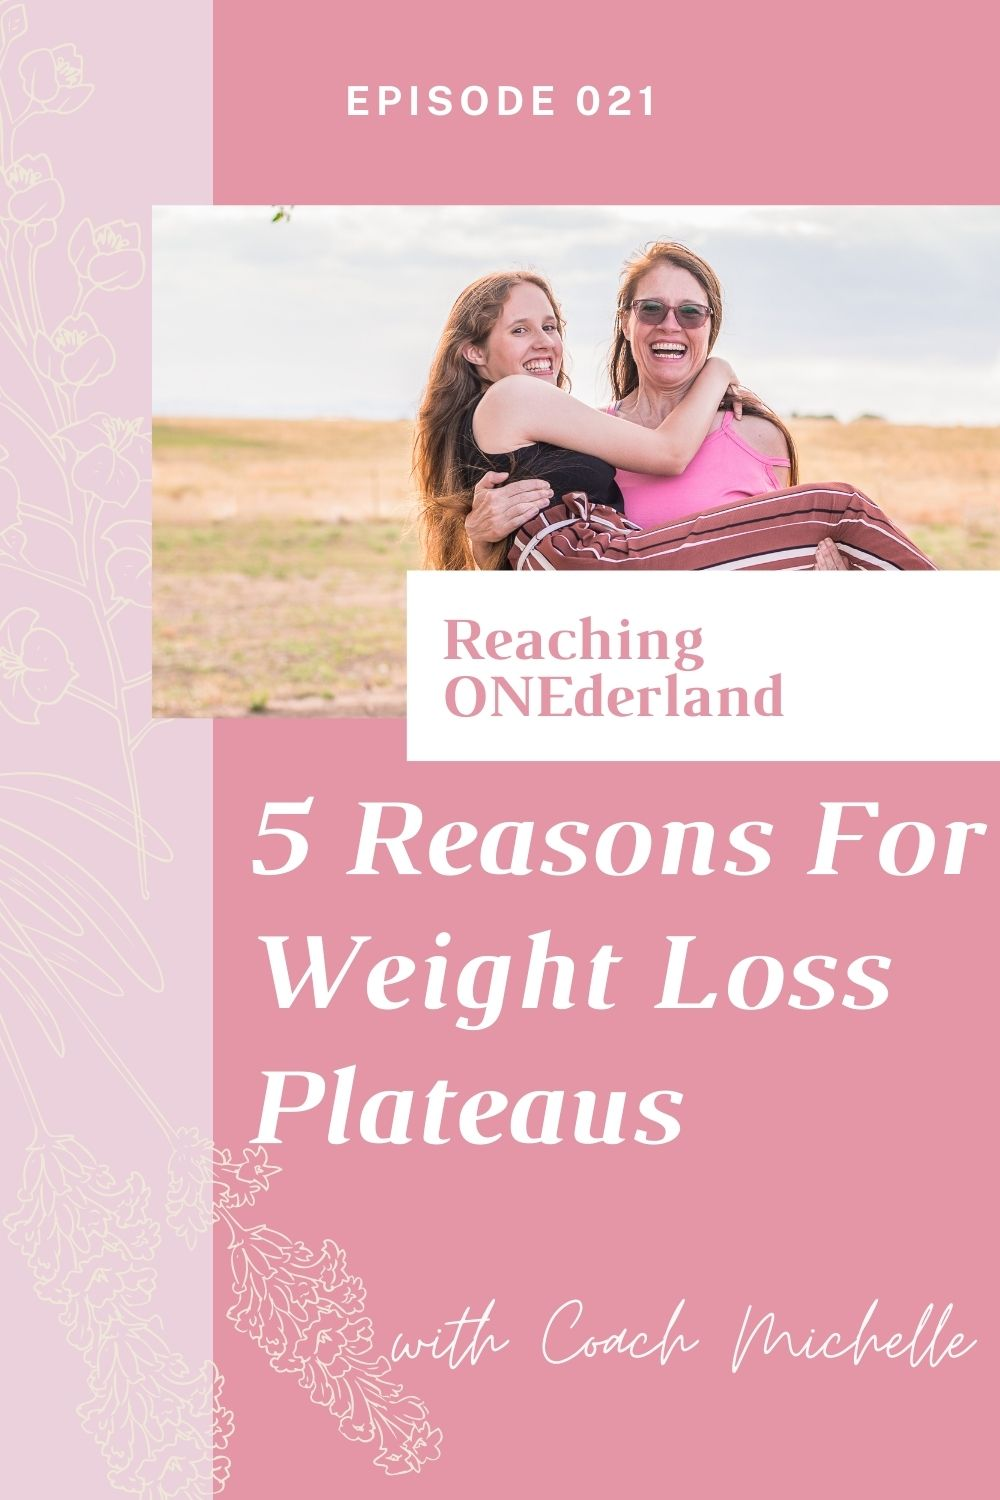 5 Reasons For Weight Loss Plateaus